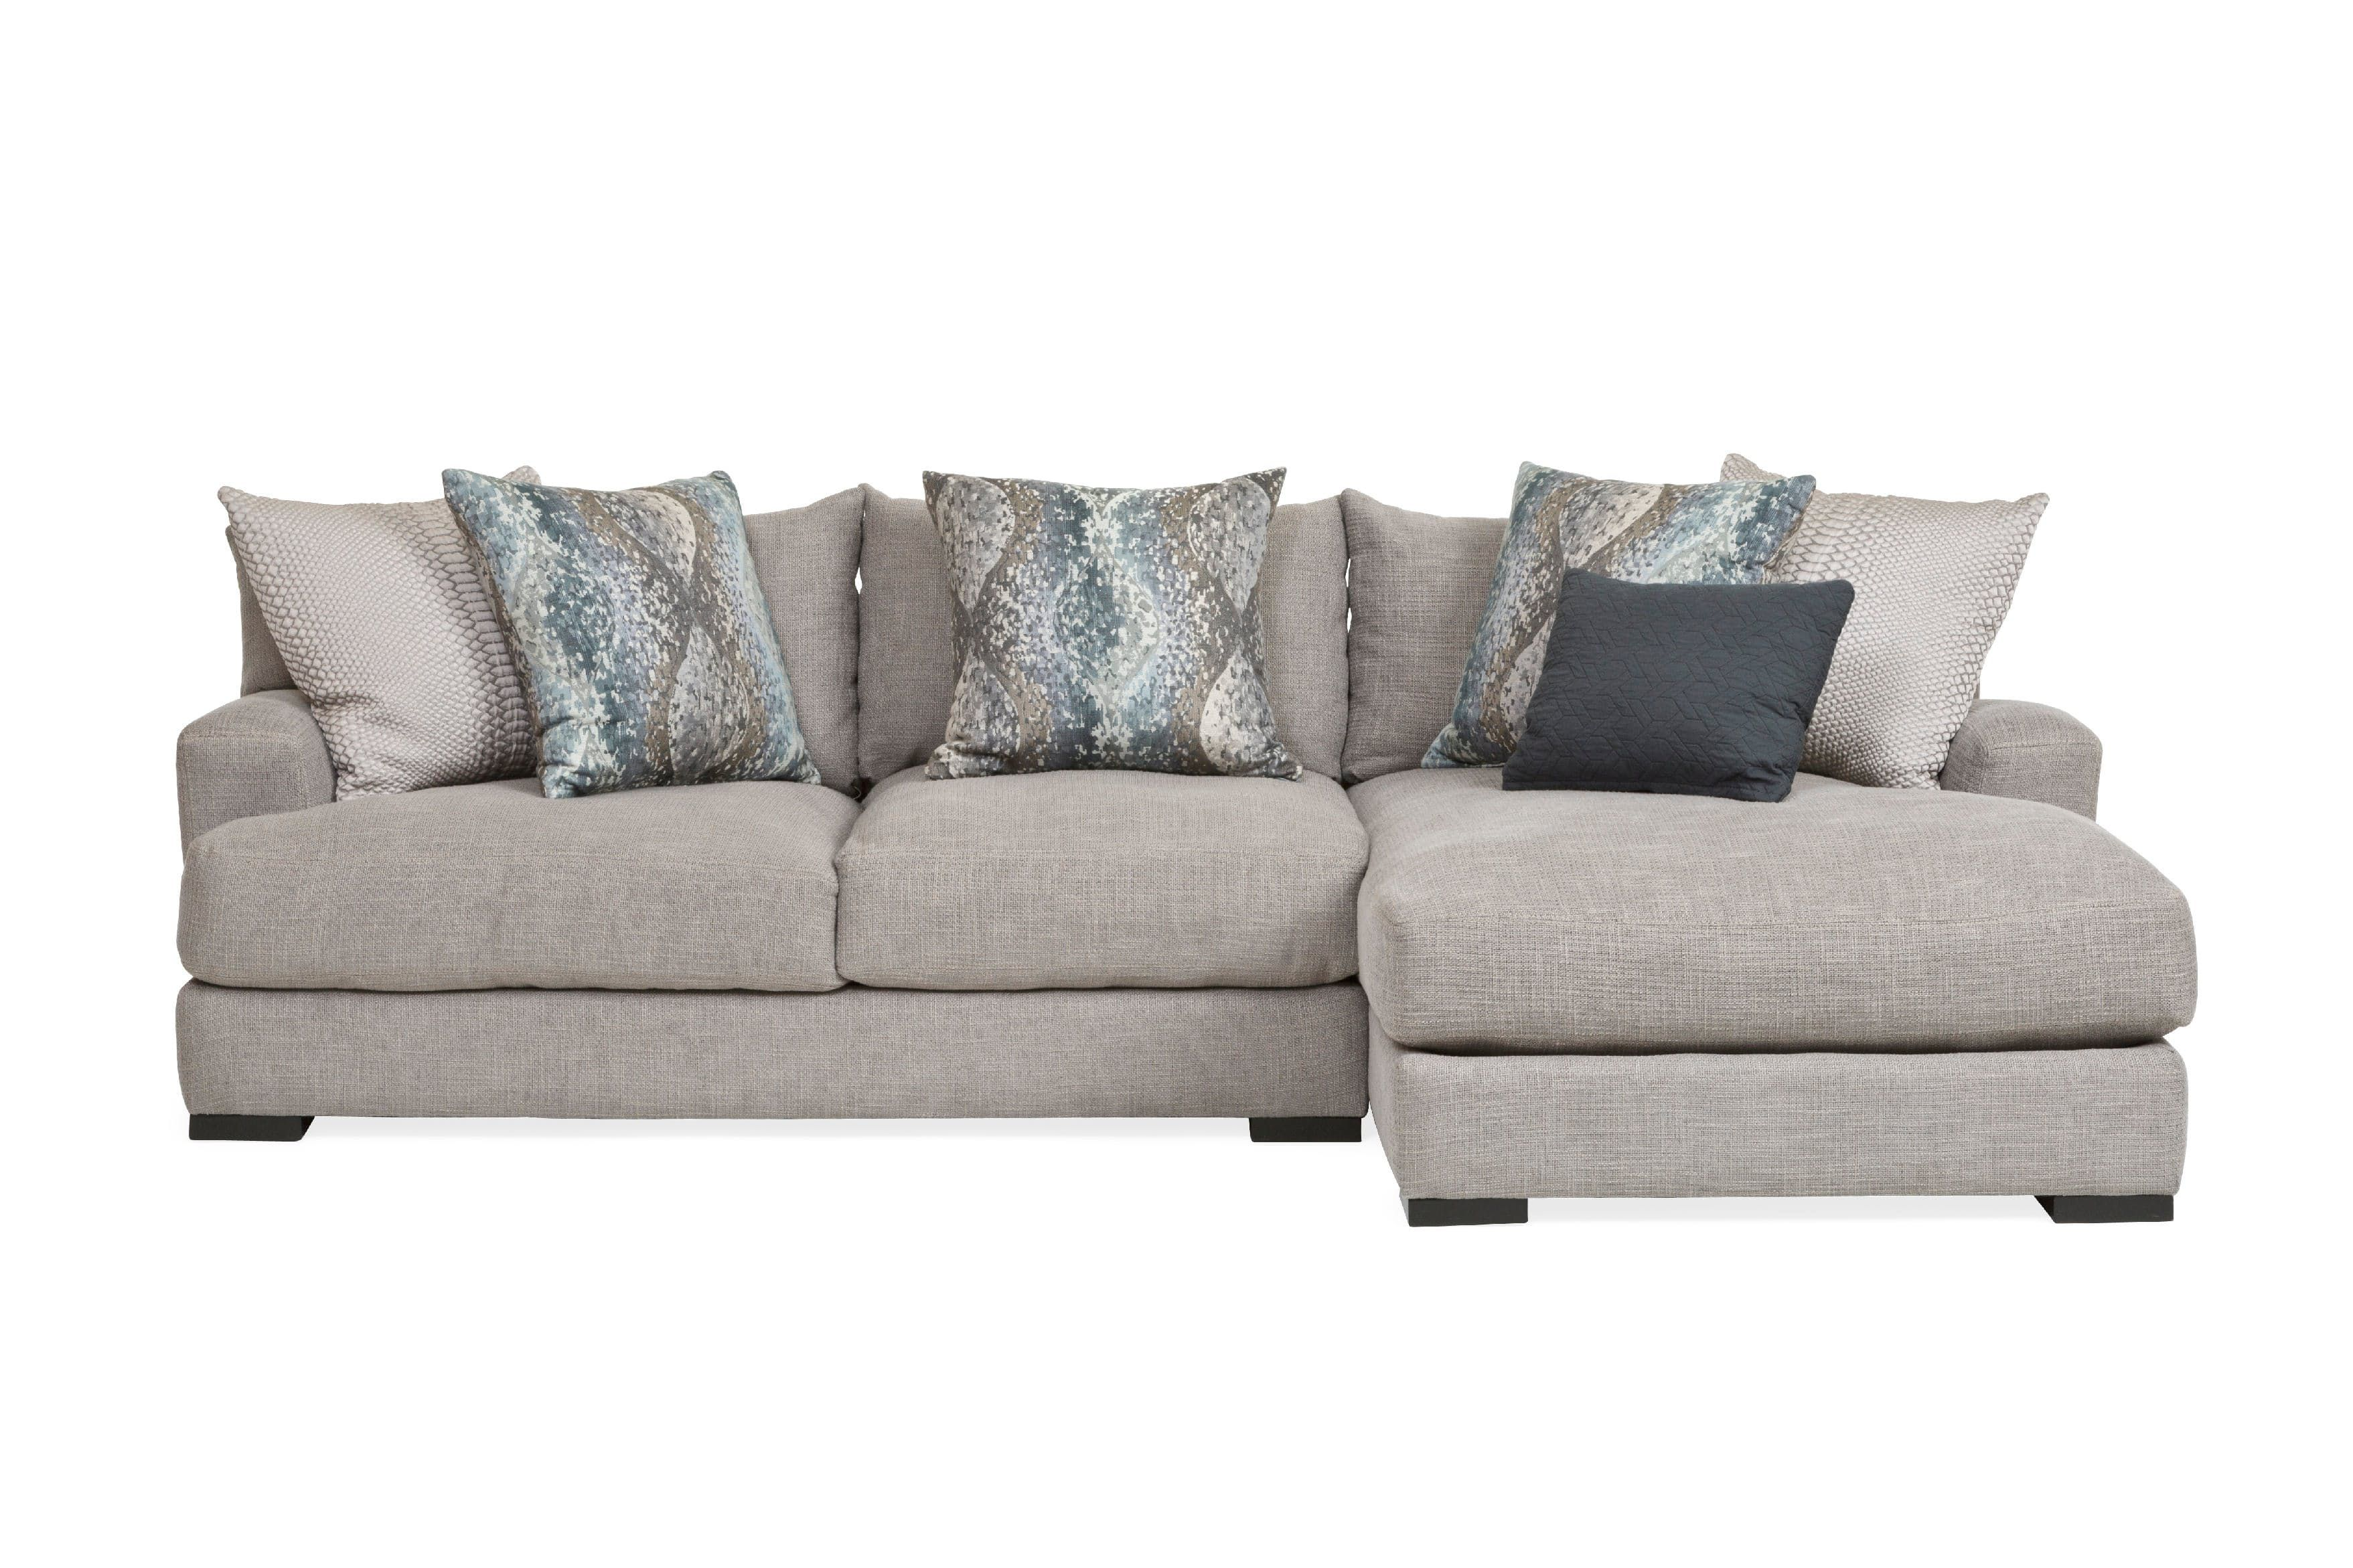 Shop For Carlin Chaise Sofa, And Other Living Room Sofas At Star Furniture  TX.